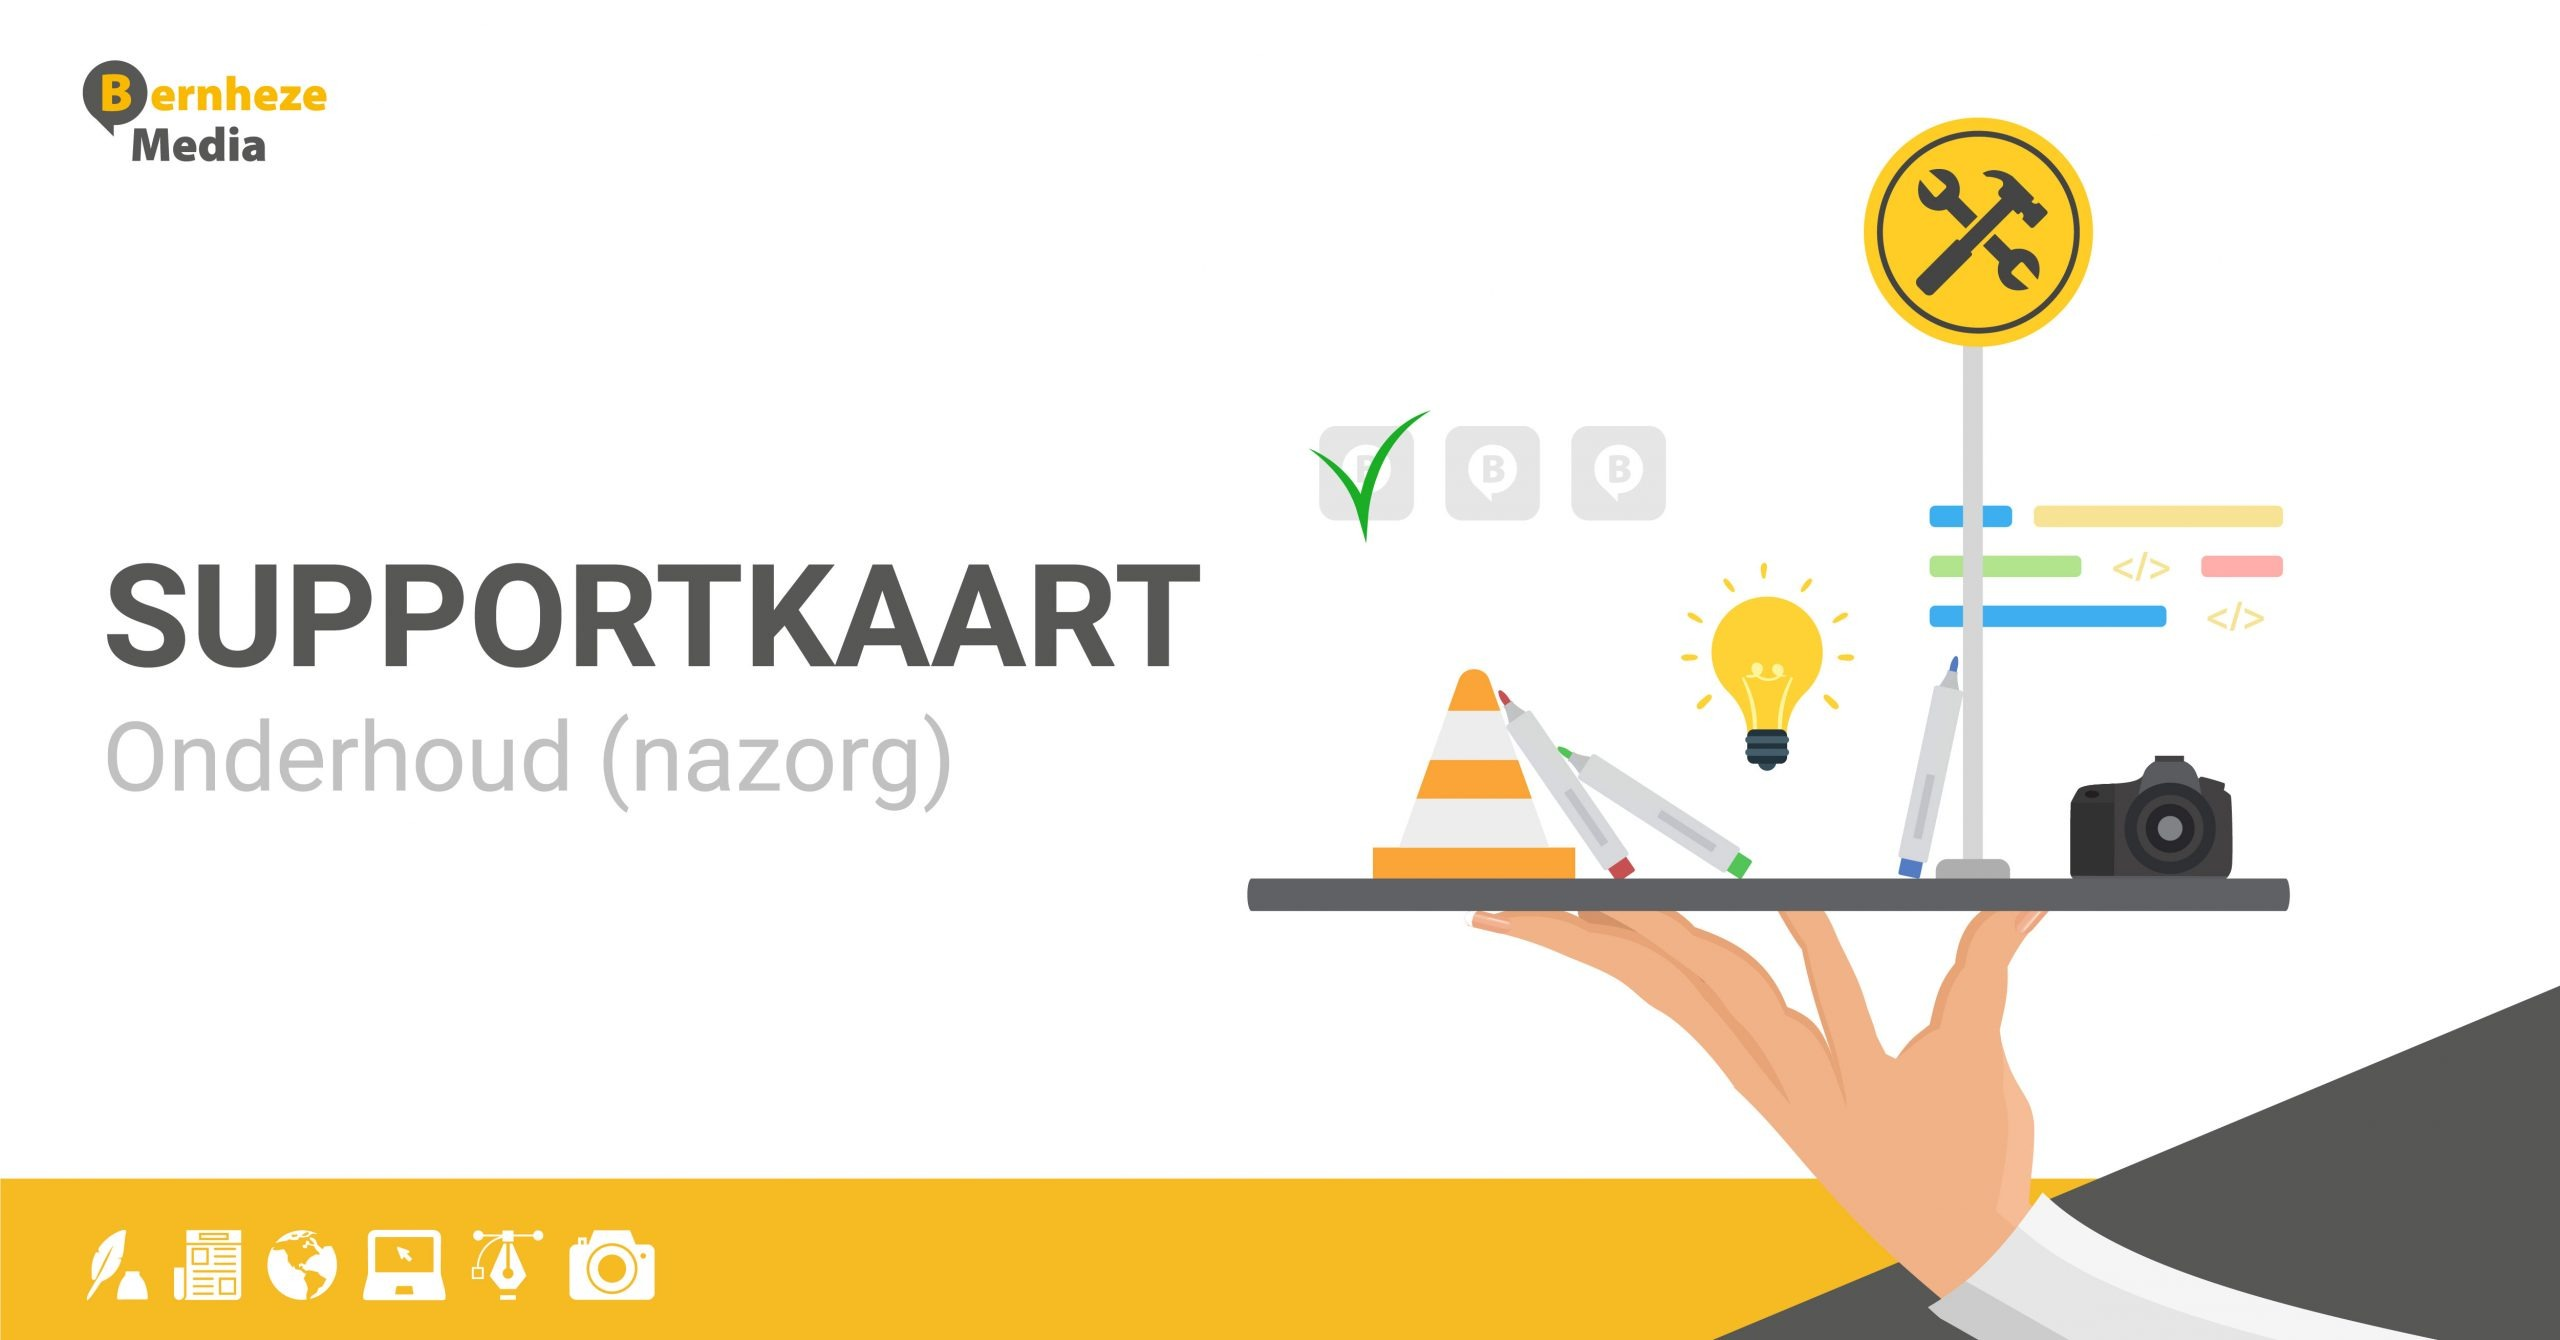 Supportkaart Wordpress onderhoud